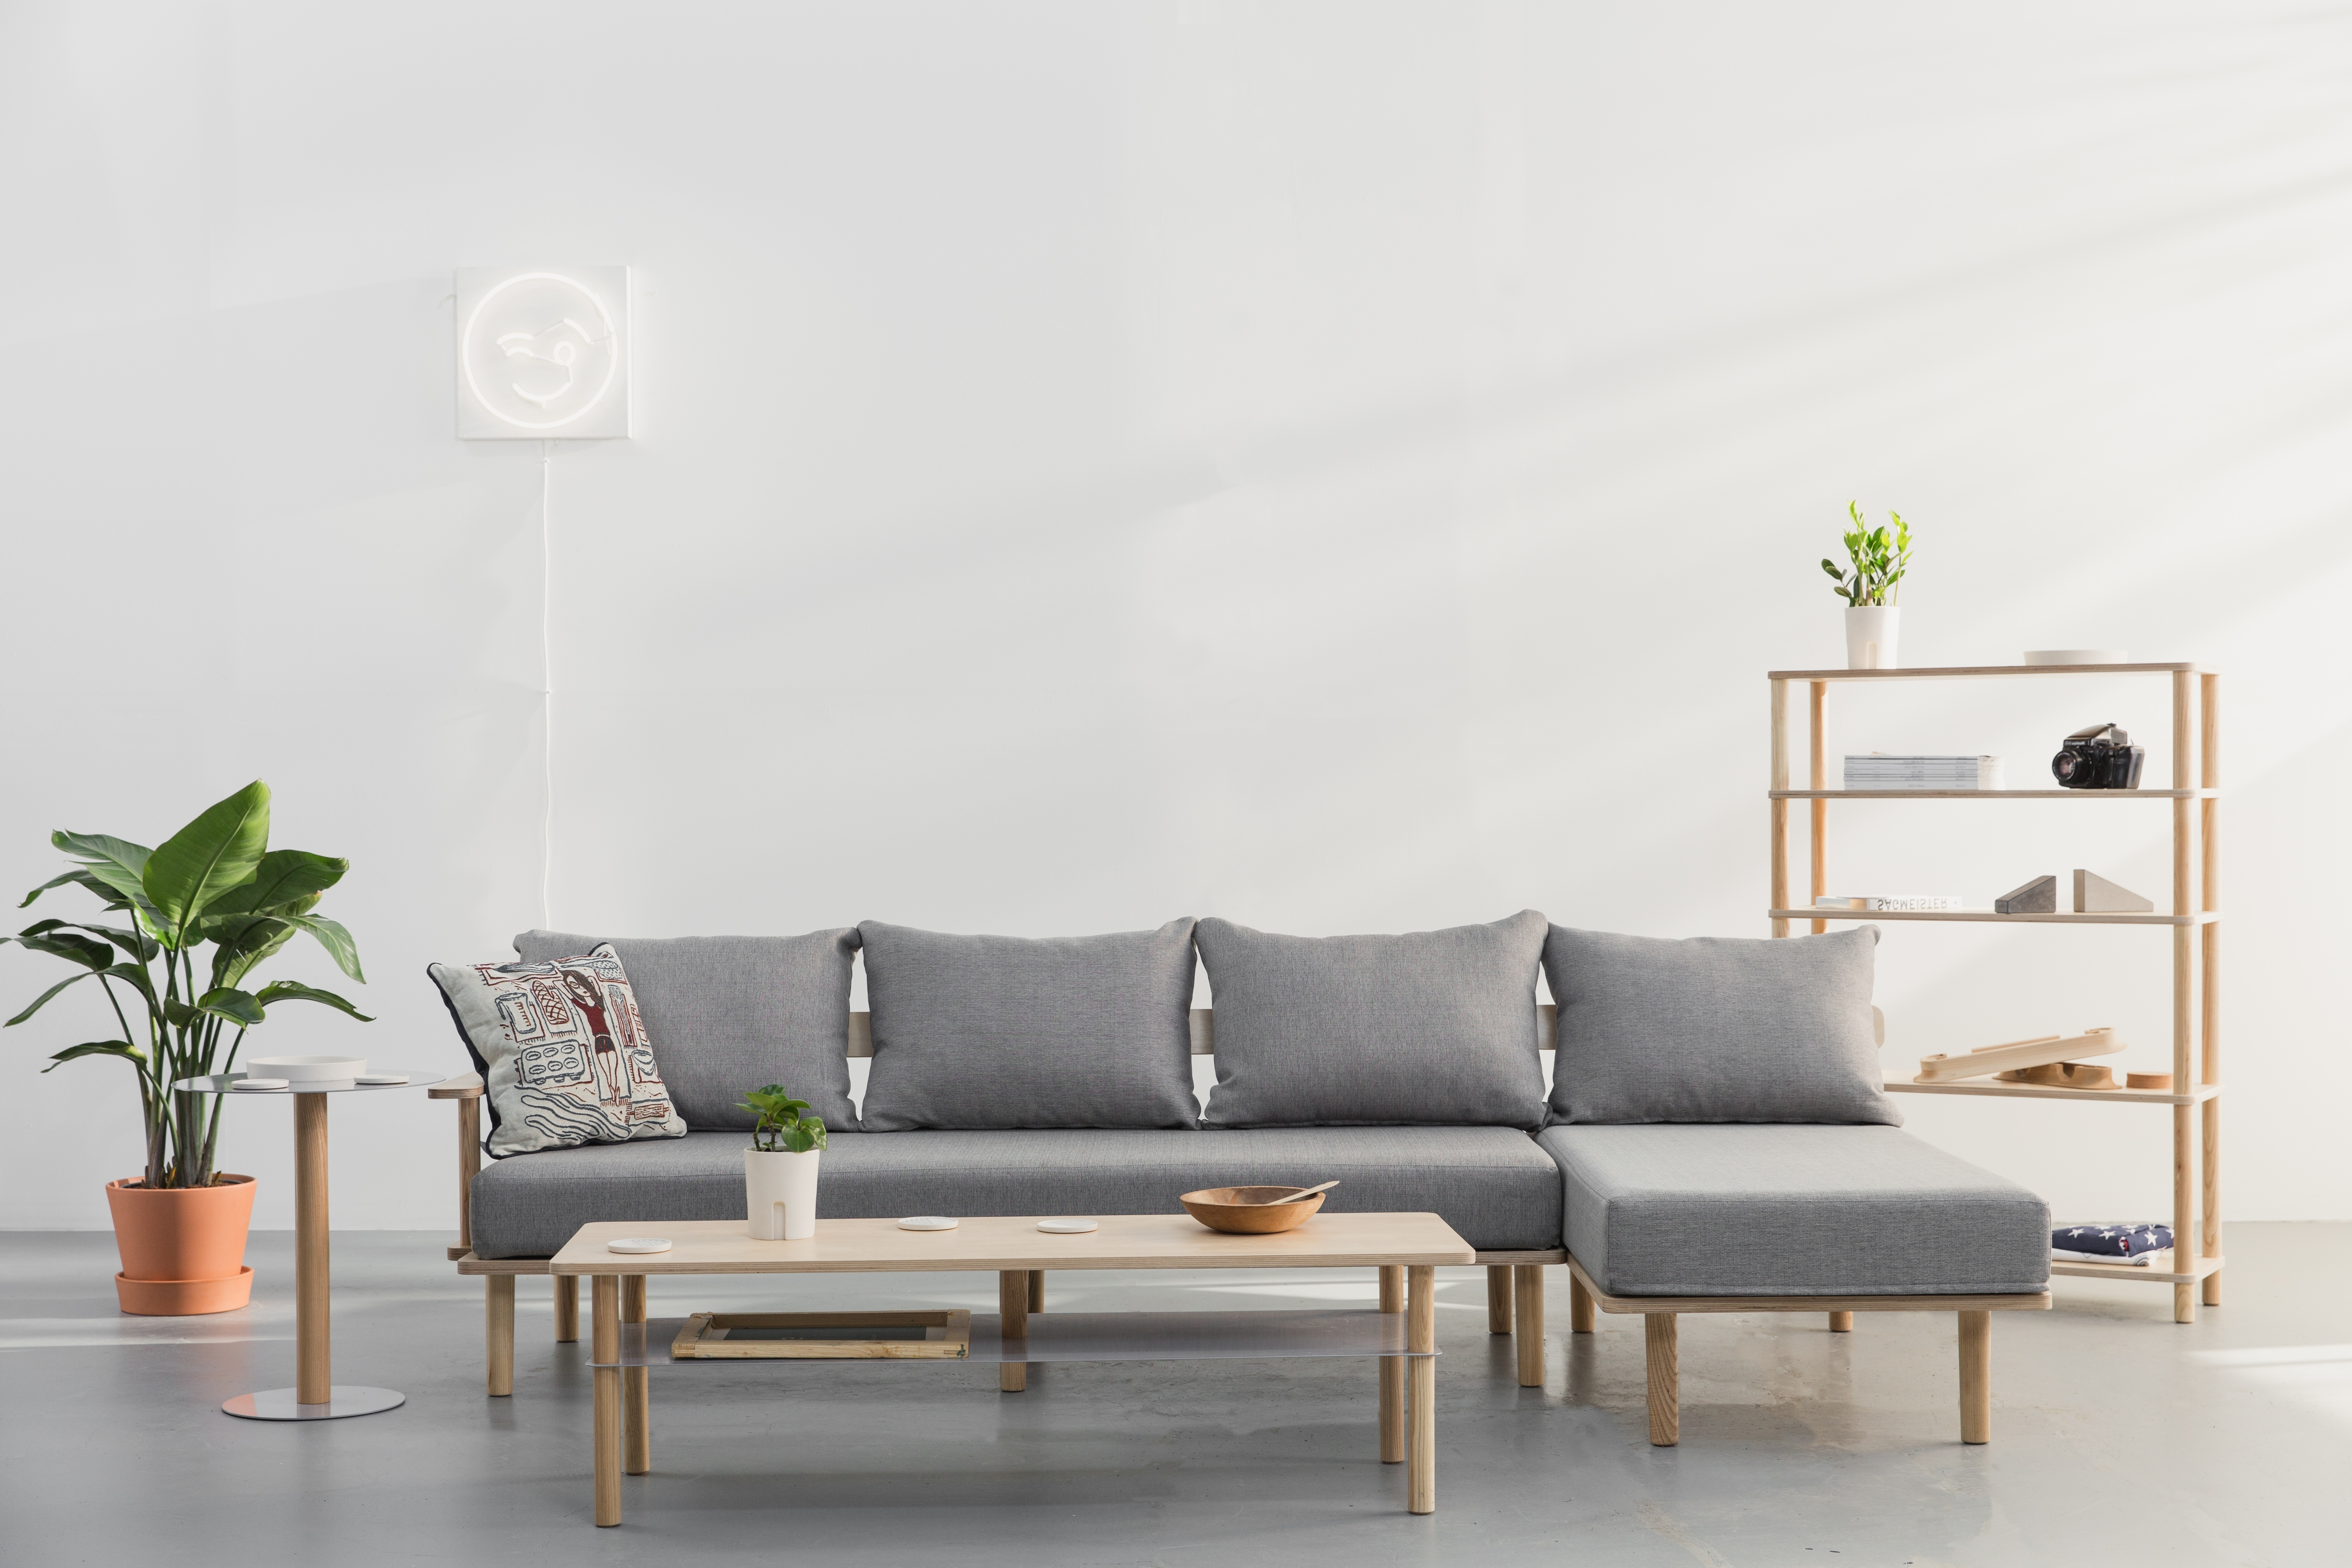 Mid Range Sofas With Regard To Widely Used After Ikea: 10 Mid Range Furniture Stores That Won't Break The (View 5 of 15)